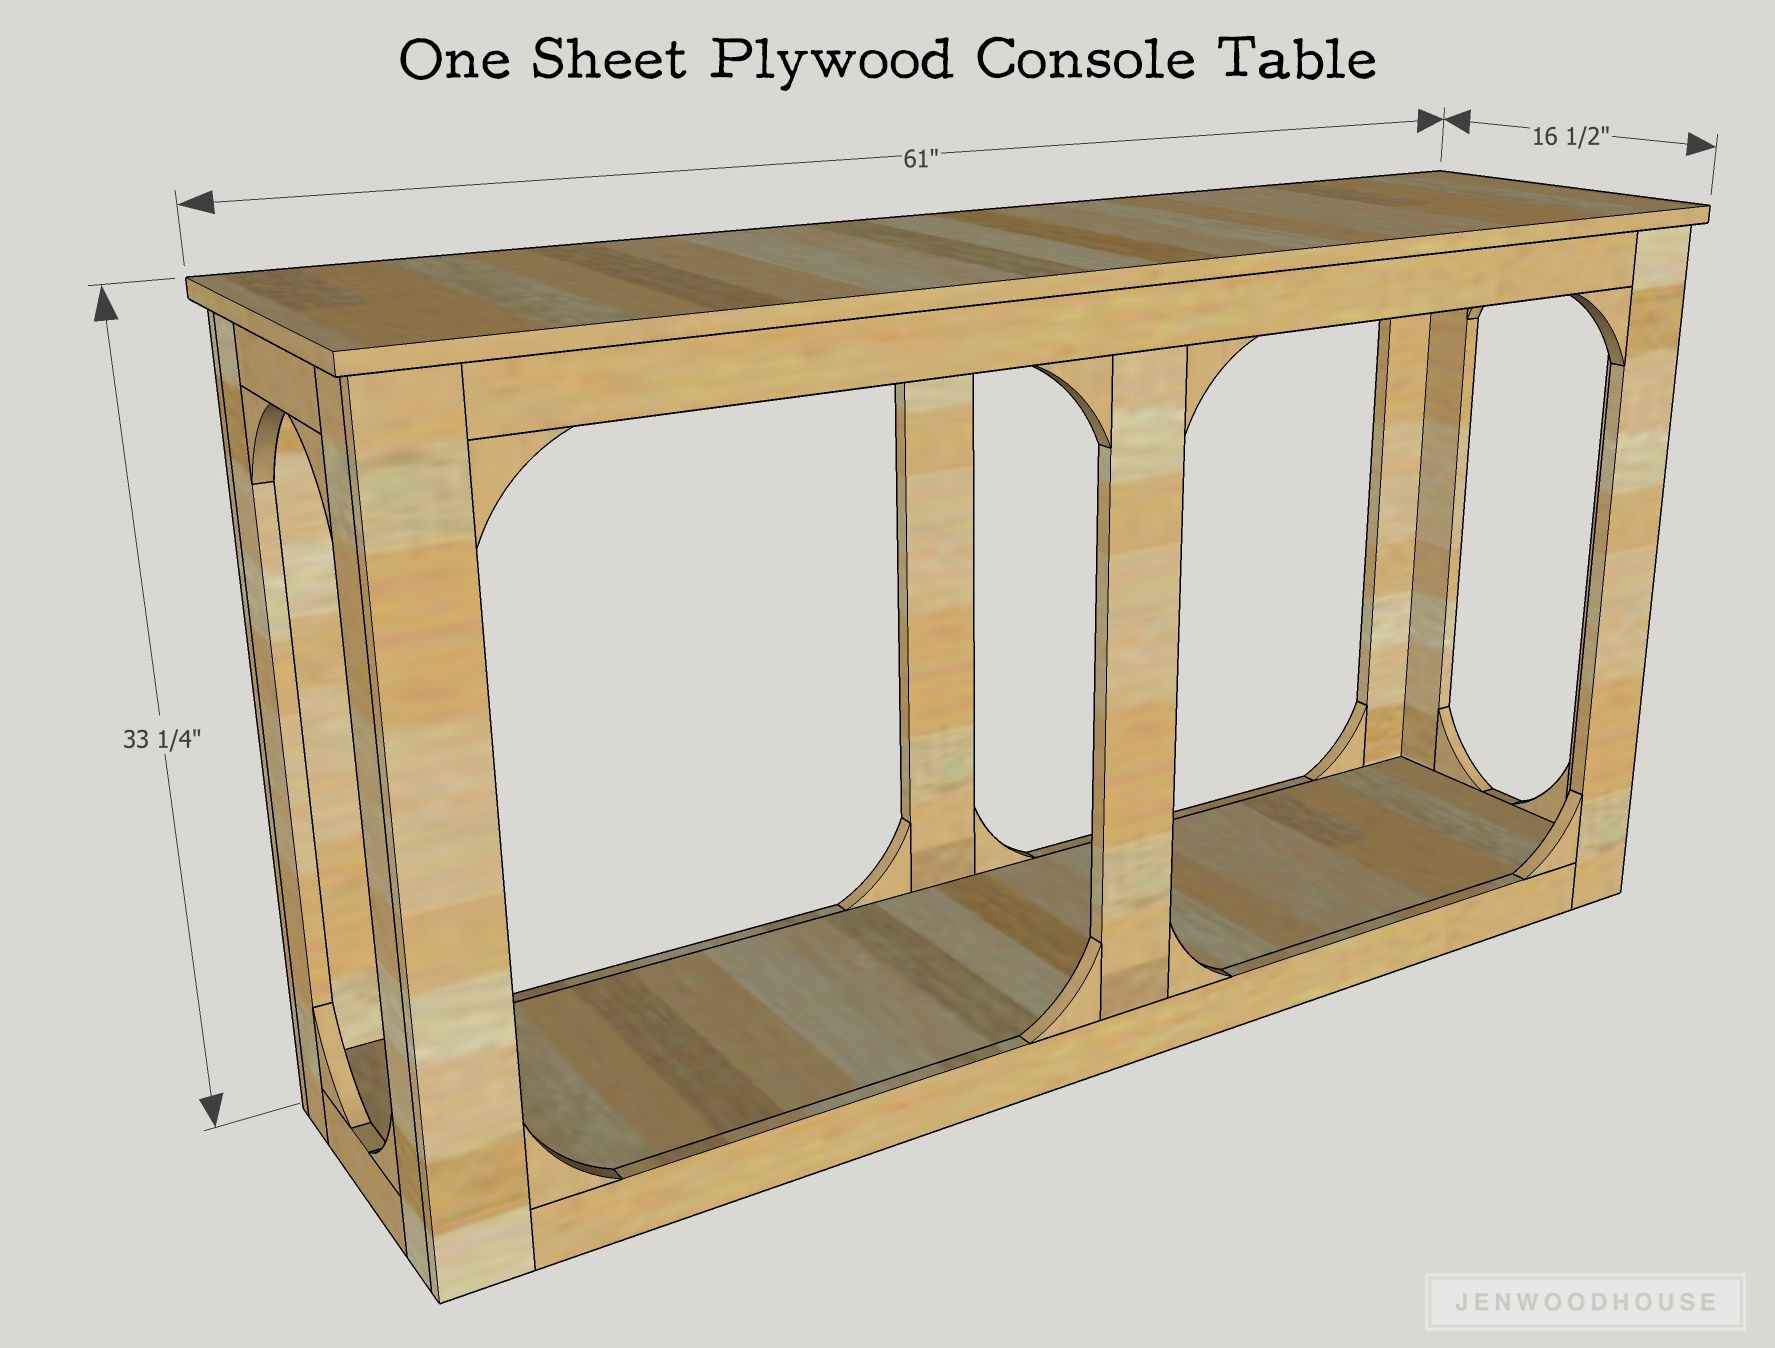 Diy One Sheet Plywood Console Table Diy Console Table All Wood Furniture Diy Table